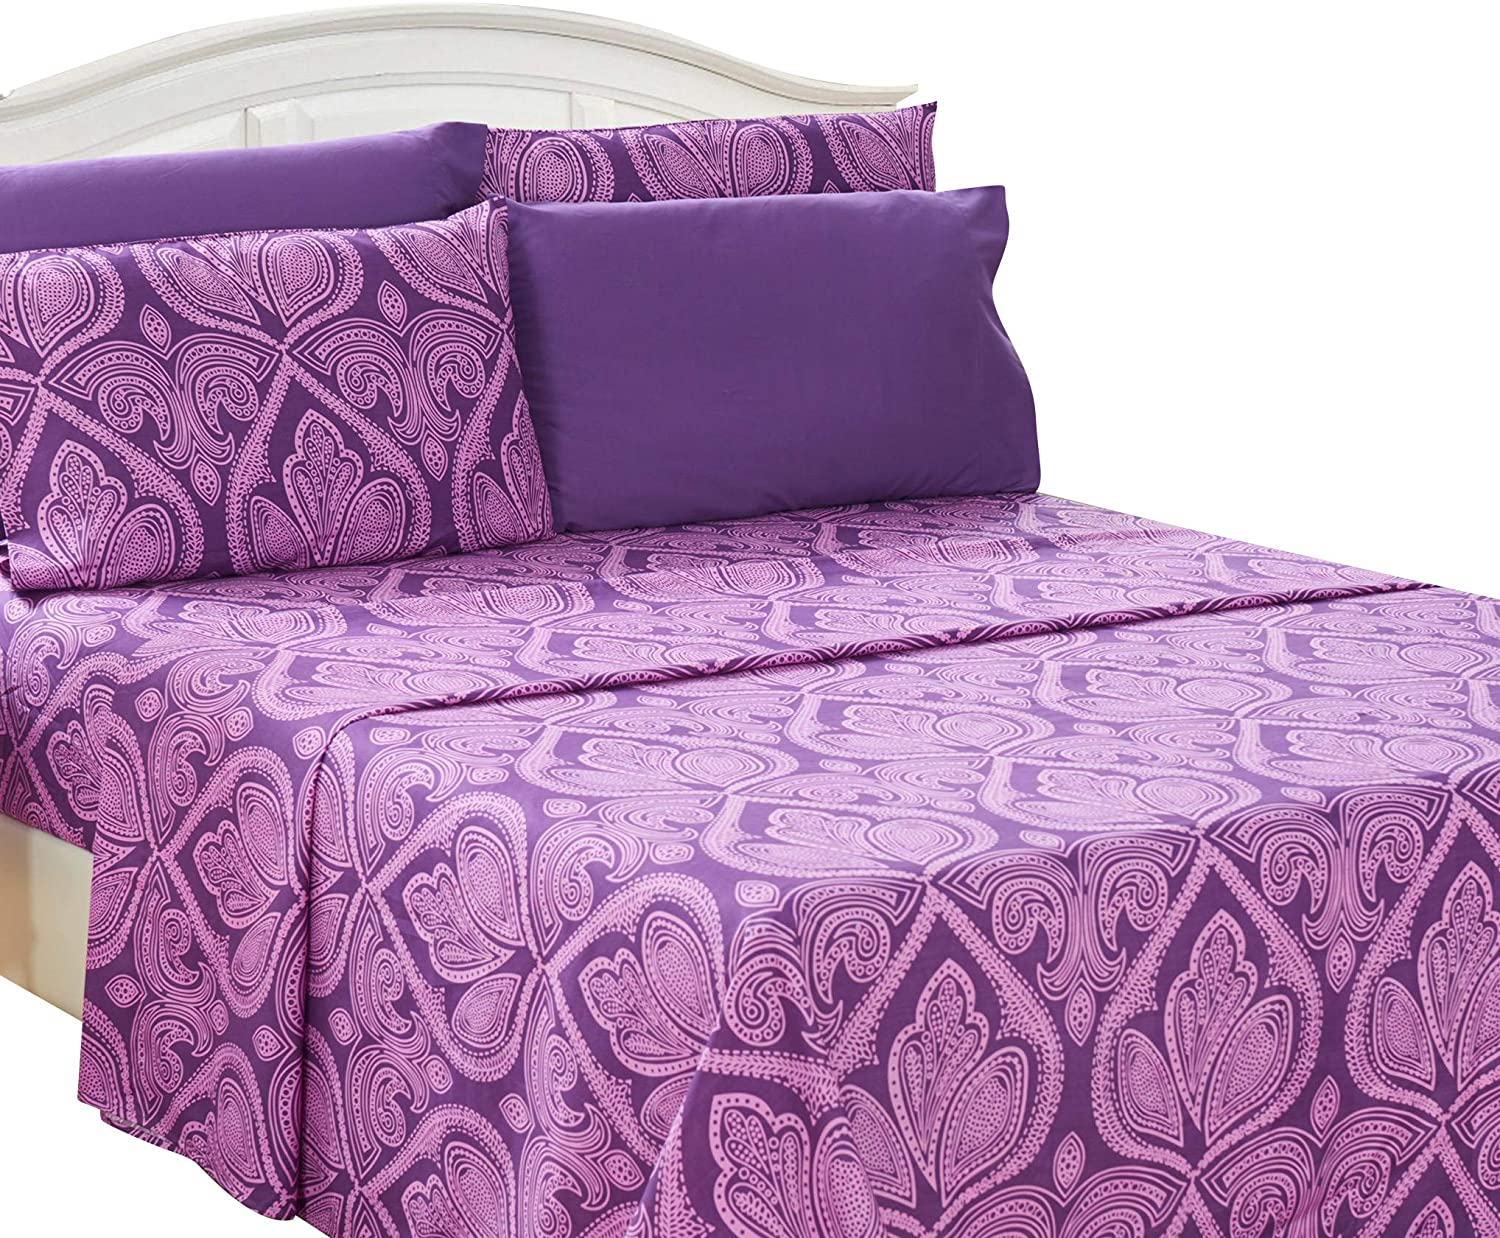 Lux Decor Collection Bed Sheet Set - Brushed Microfiber 1800 Bedding - Wrinkle, Stain and Fade Resistant - Hypoallergenic - 6 Piece (Queen, Paisley Purple)